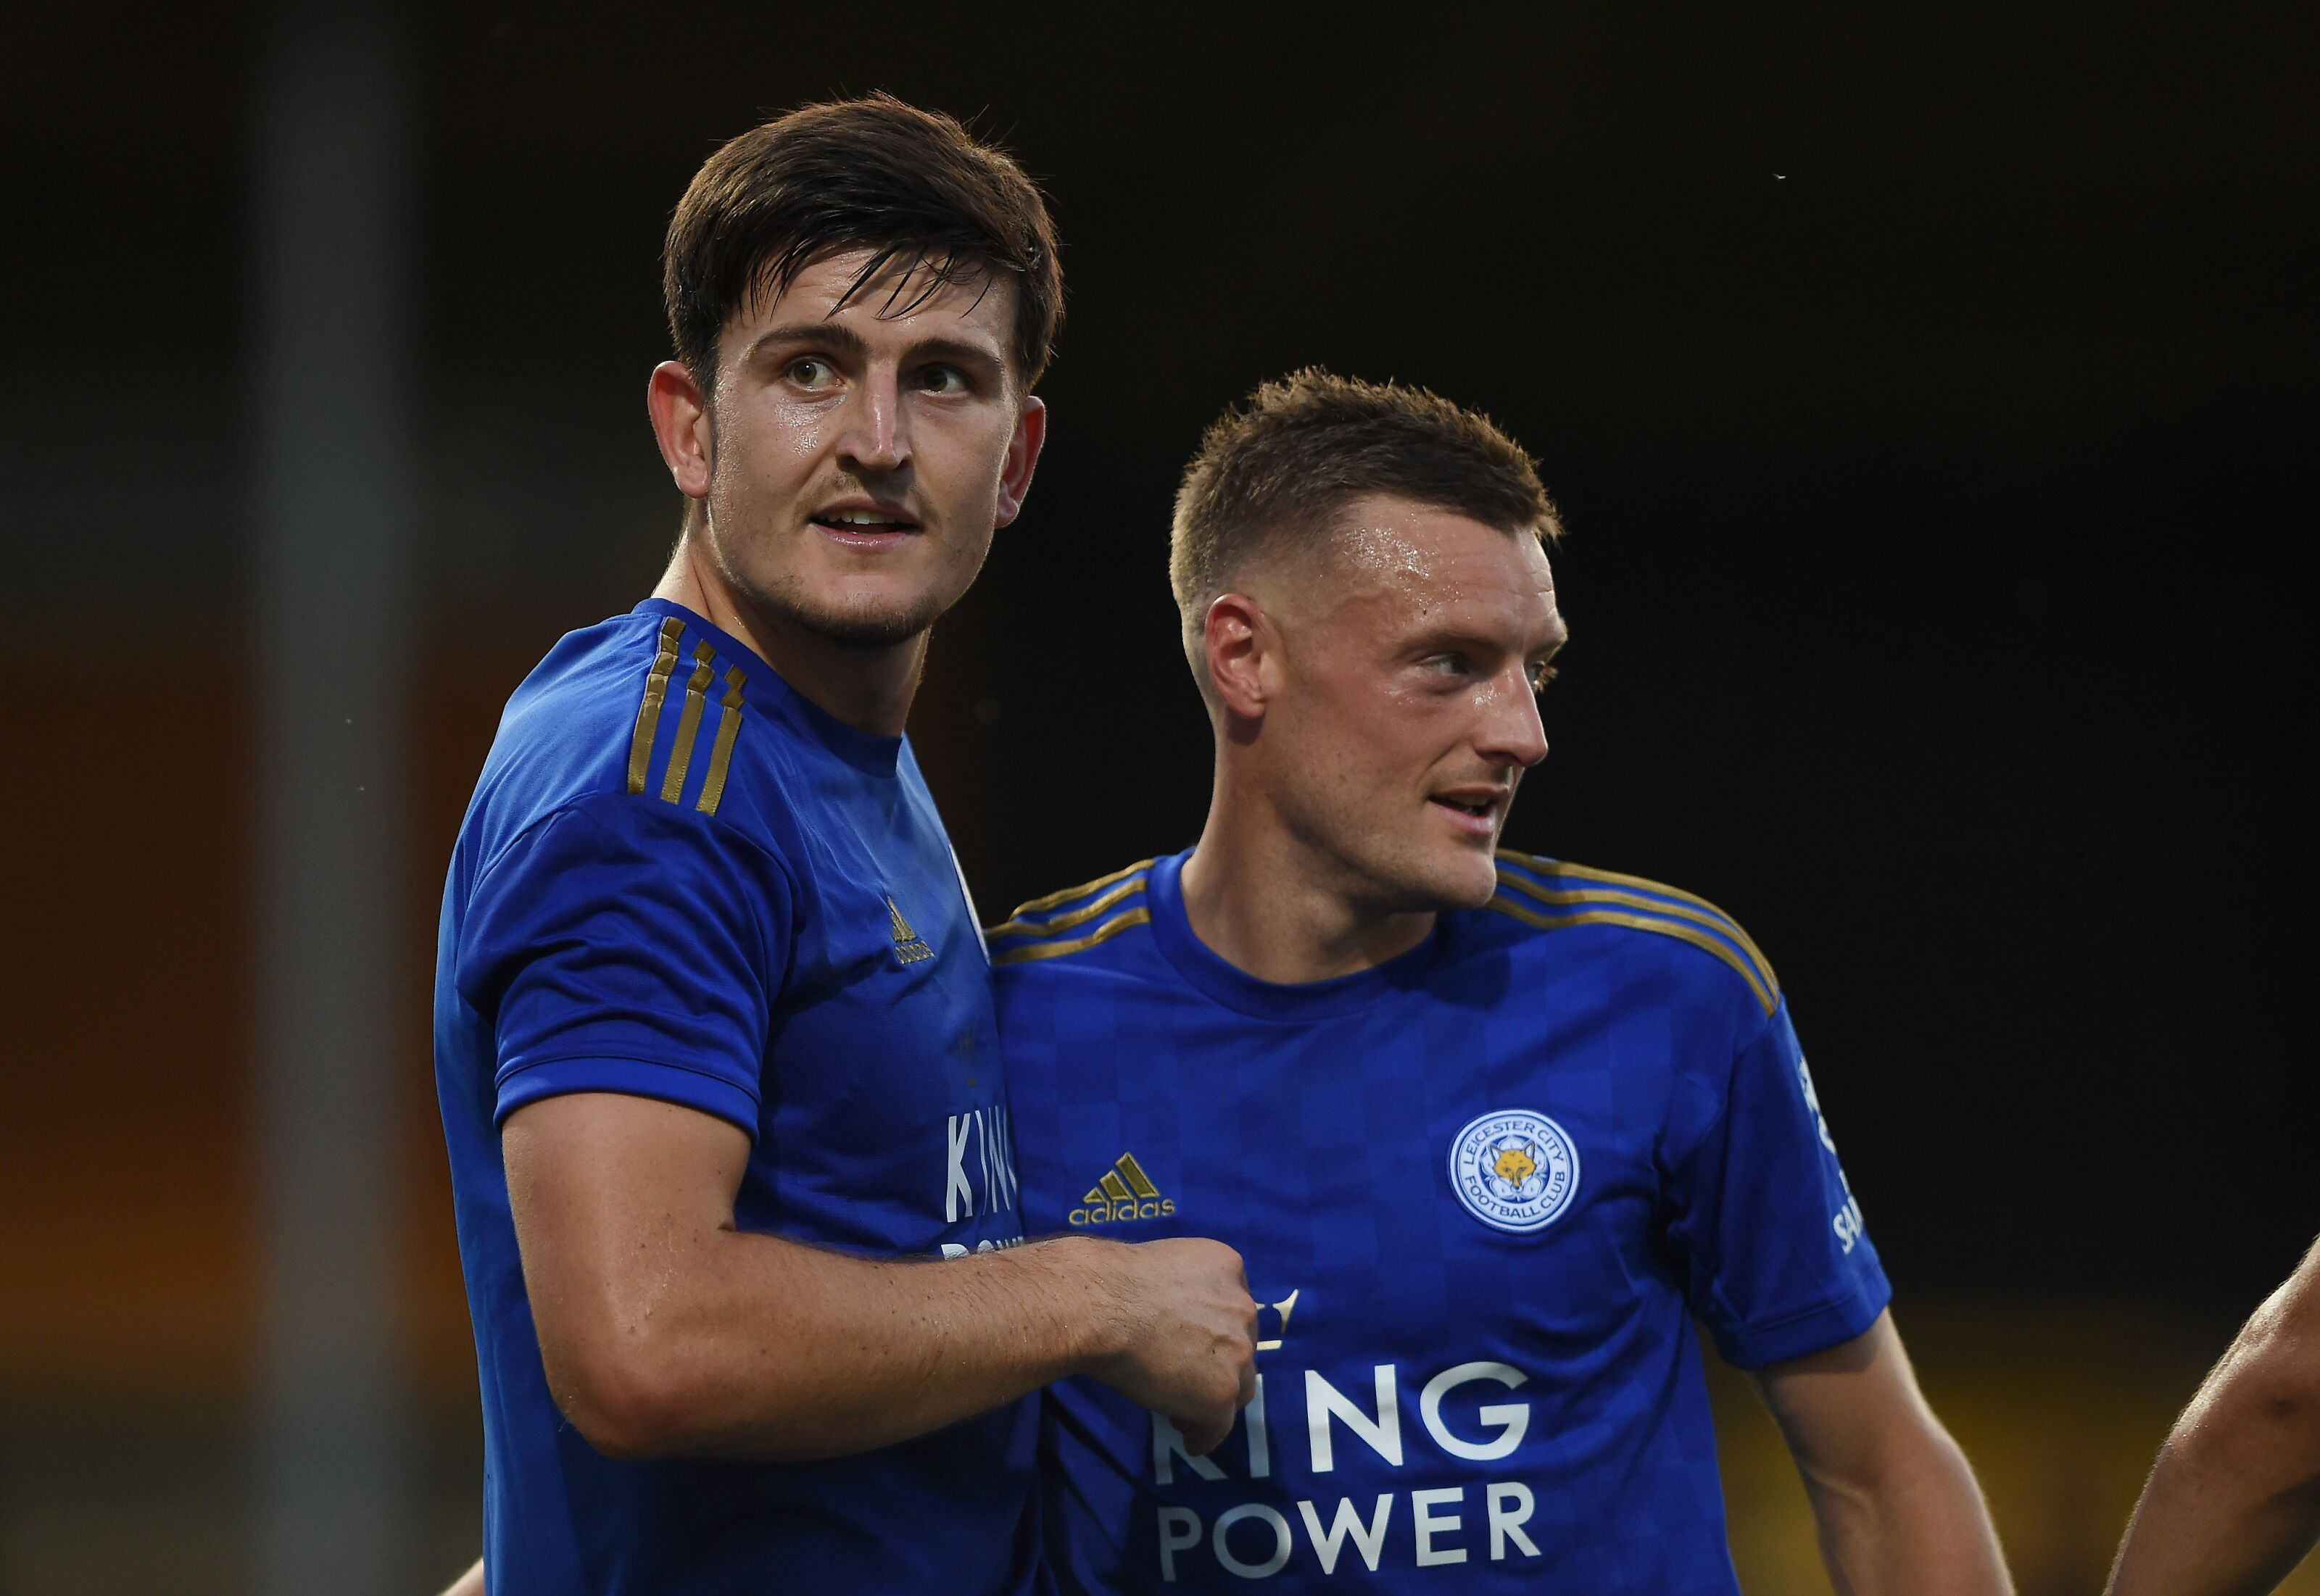 Cambridge United 0-3 Leicester City: Three successive friendly wins